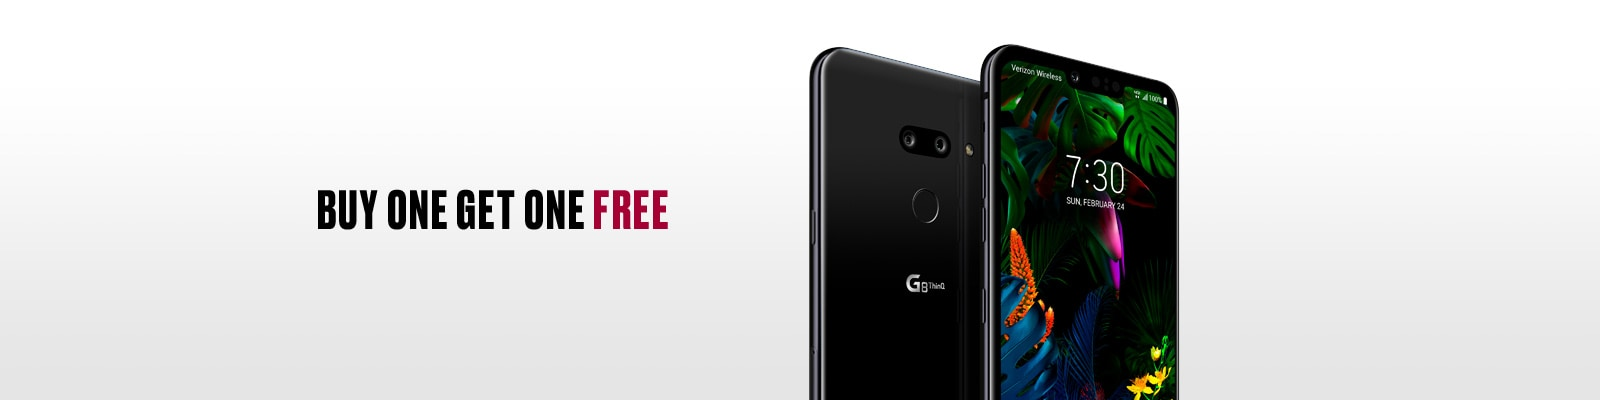 Verizon Wireless LG G8 Promo. Get up to $1000 when you switch with select trade-in and Unlimited.